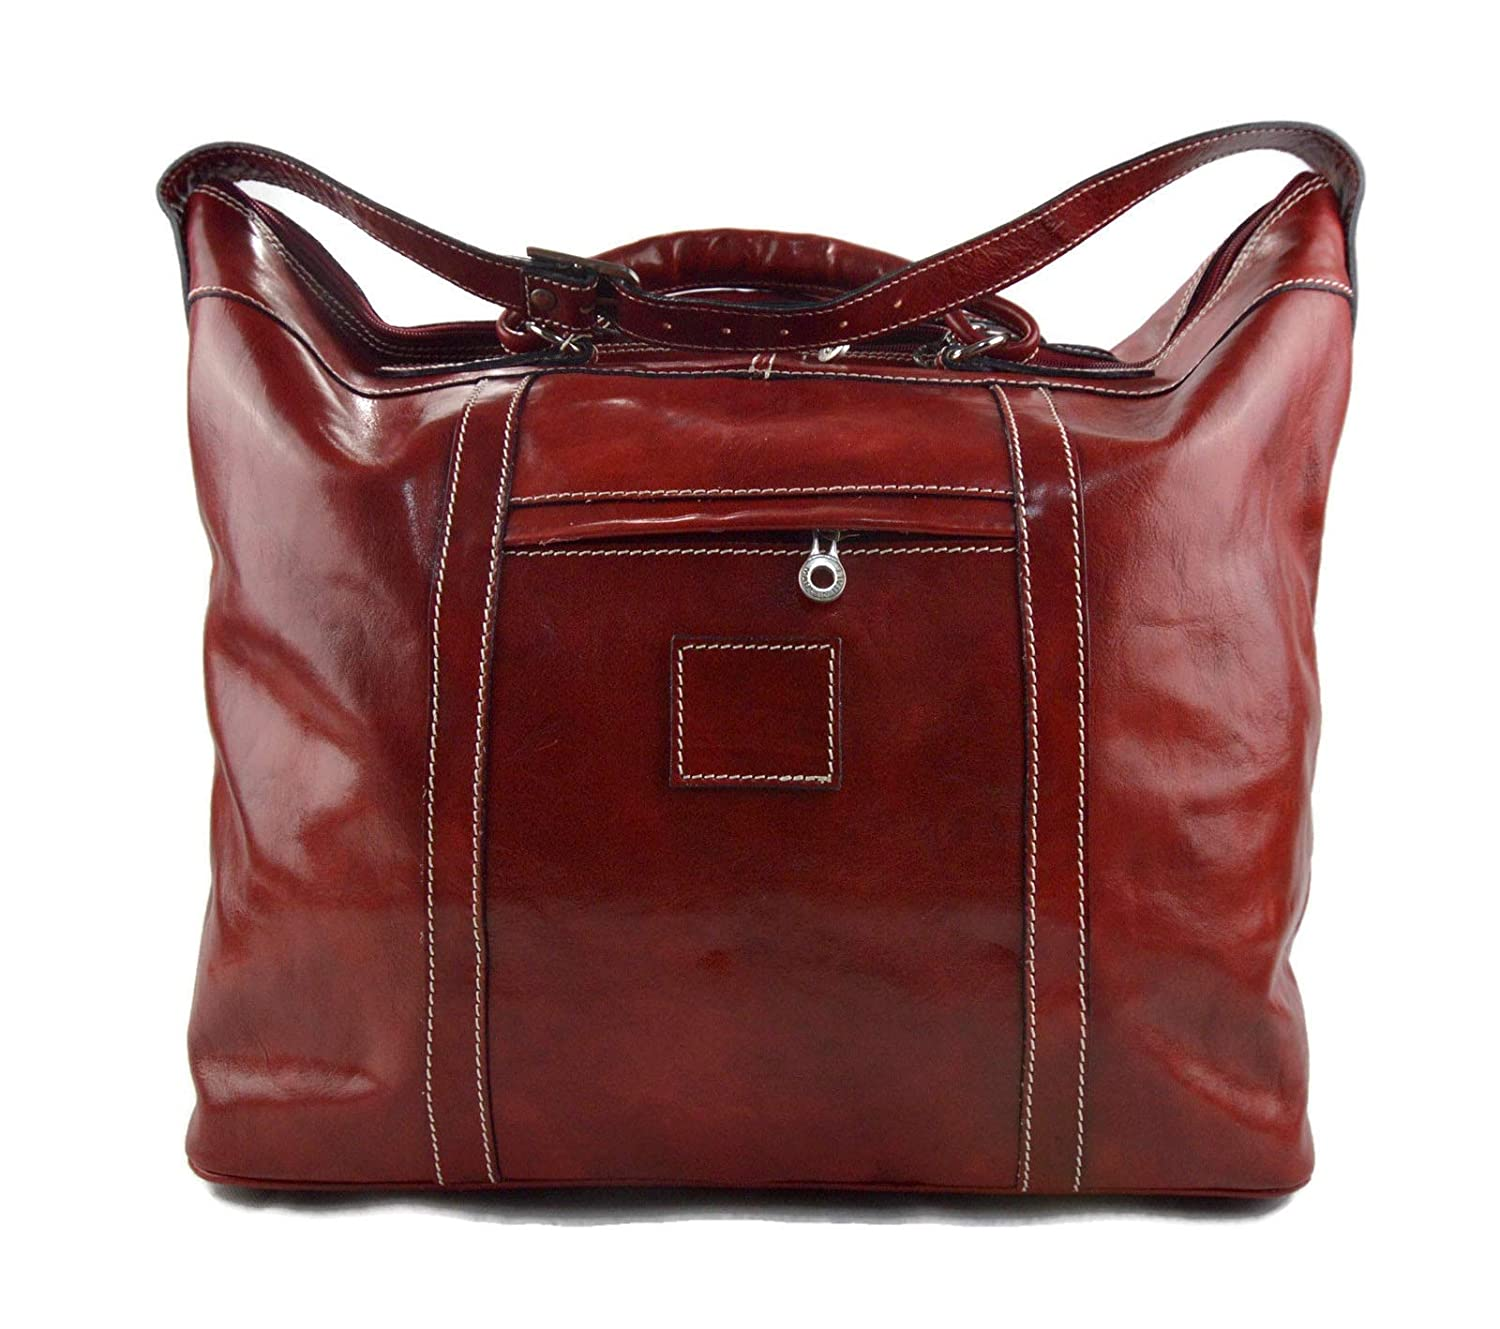 Leather duffle bag red leather genuine shoulder New Inventory cleanup selling sale life XXXL